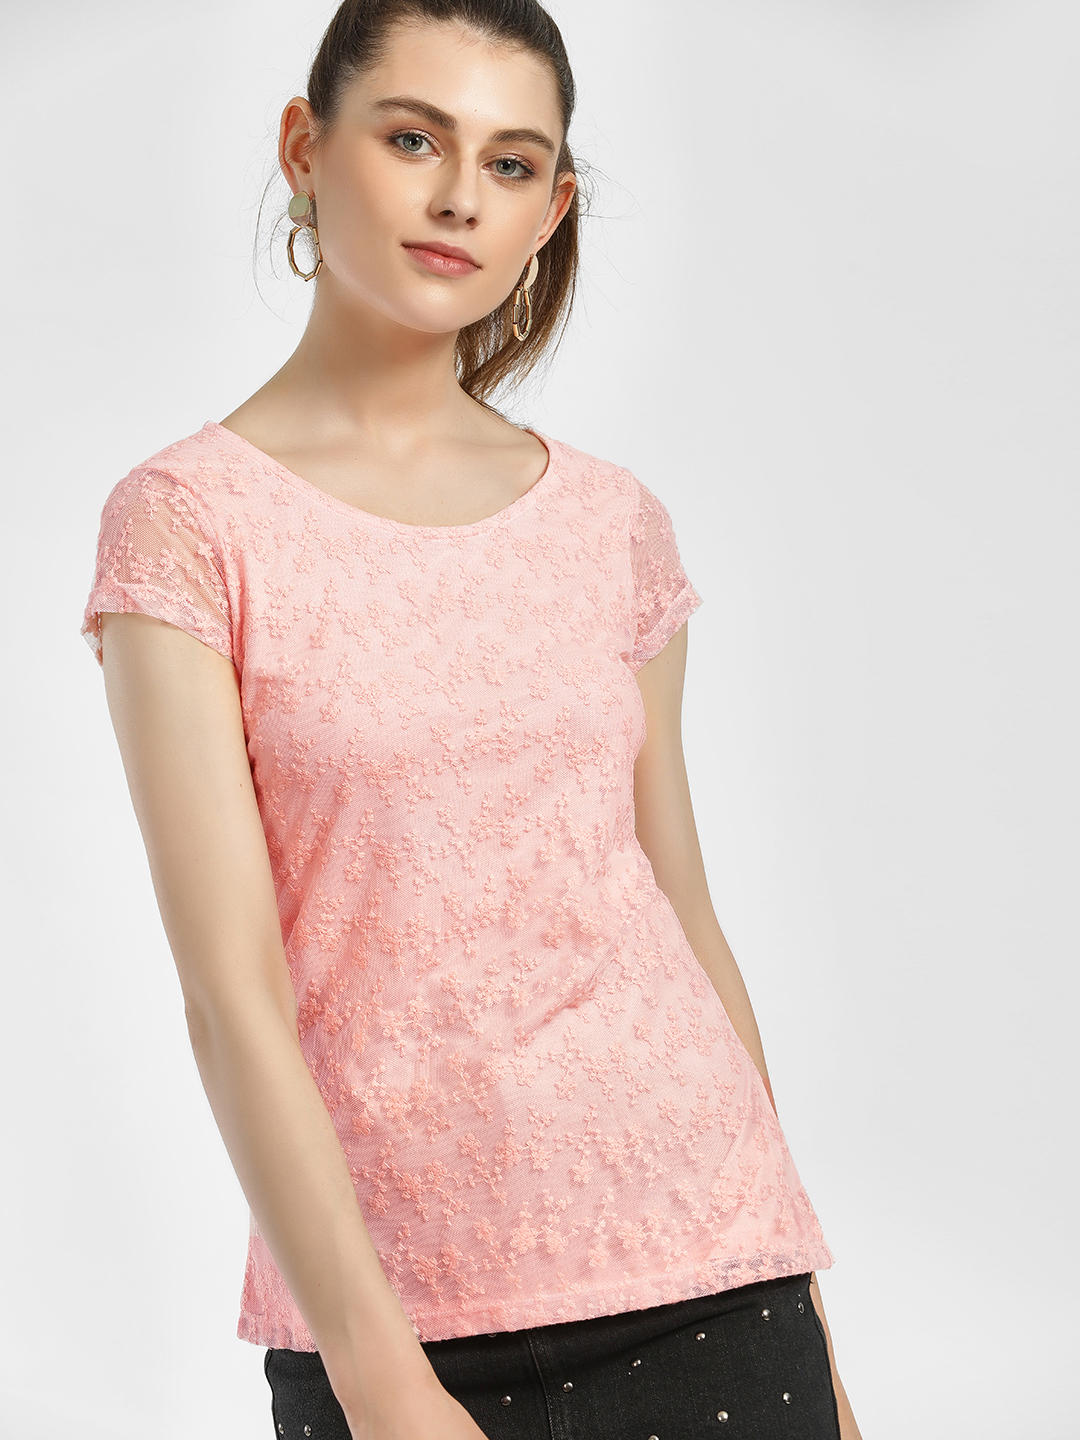 LC Waikiki Pink Floral Embroidered Mesh Top 1